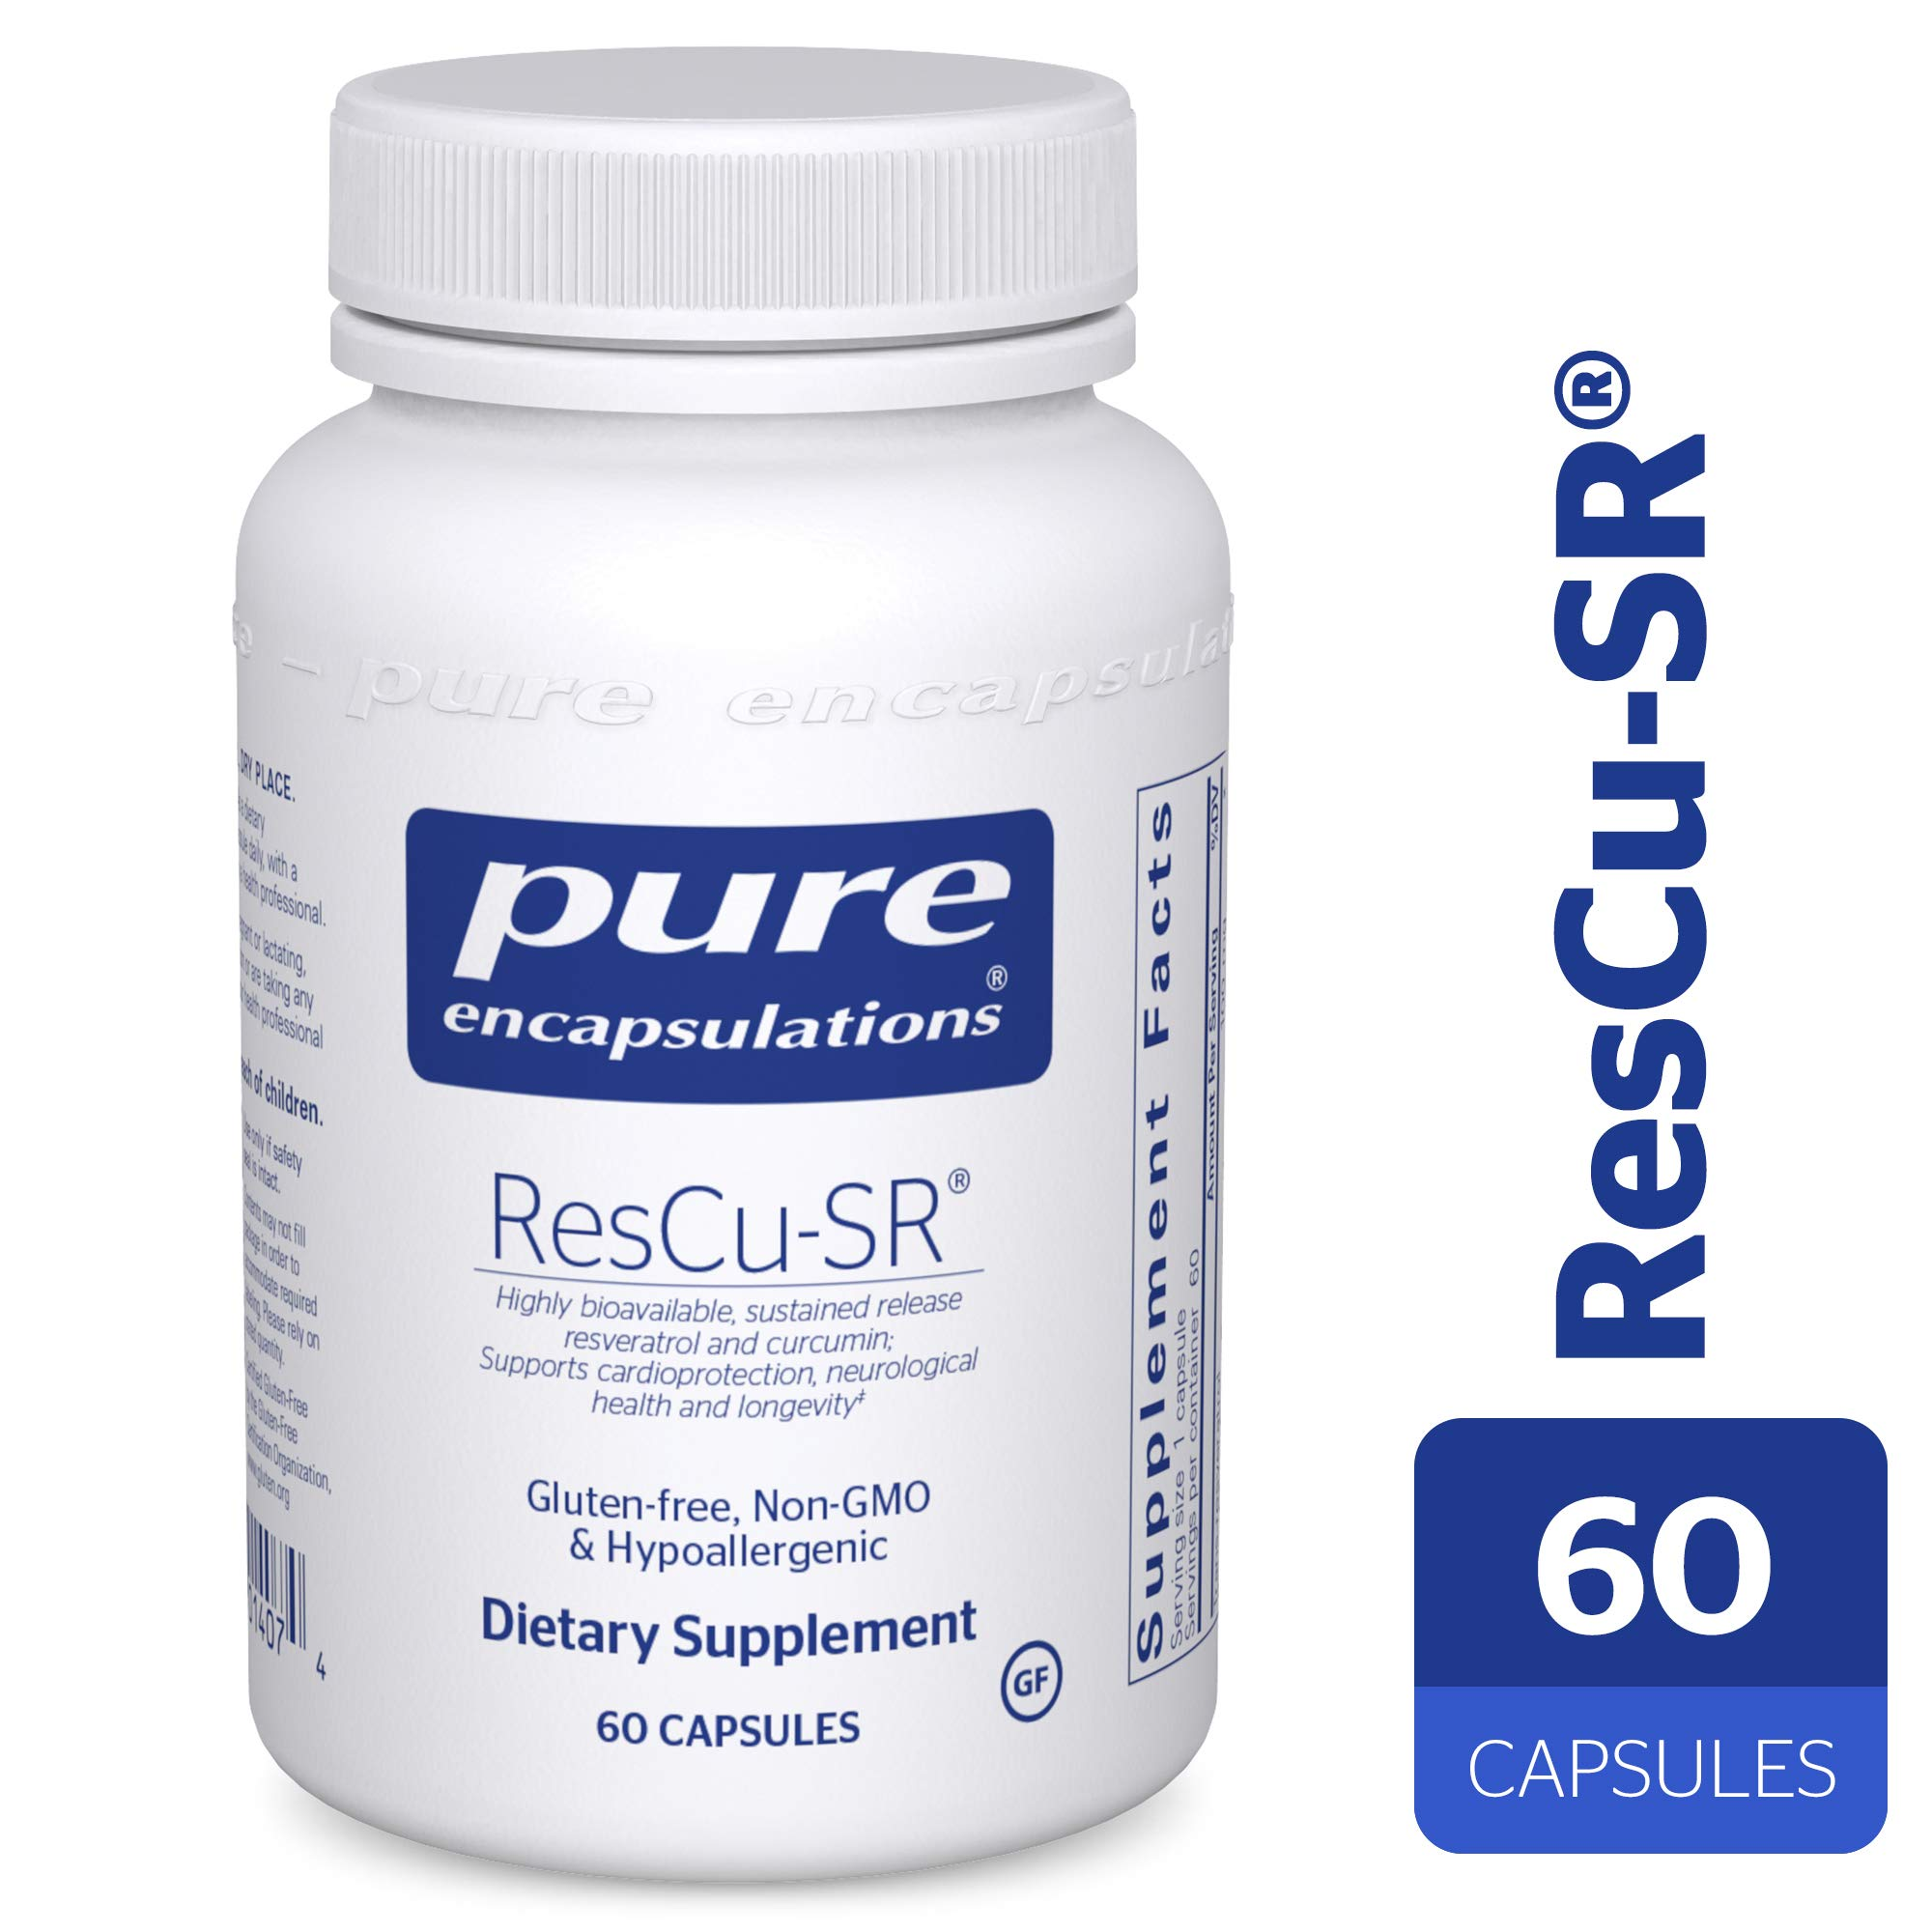 Pure Encapsulations - ResCu-SR - Hypoallergenic Dietary Supplement for Longevity, Cardio Support and Neurological Health* - 60 Capsules